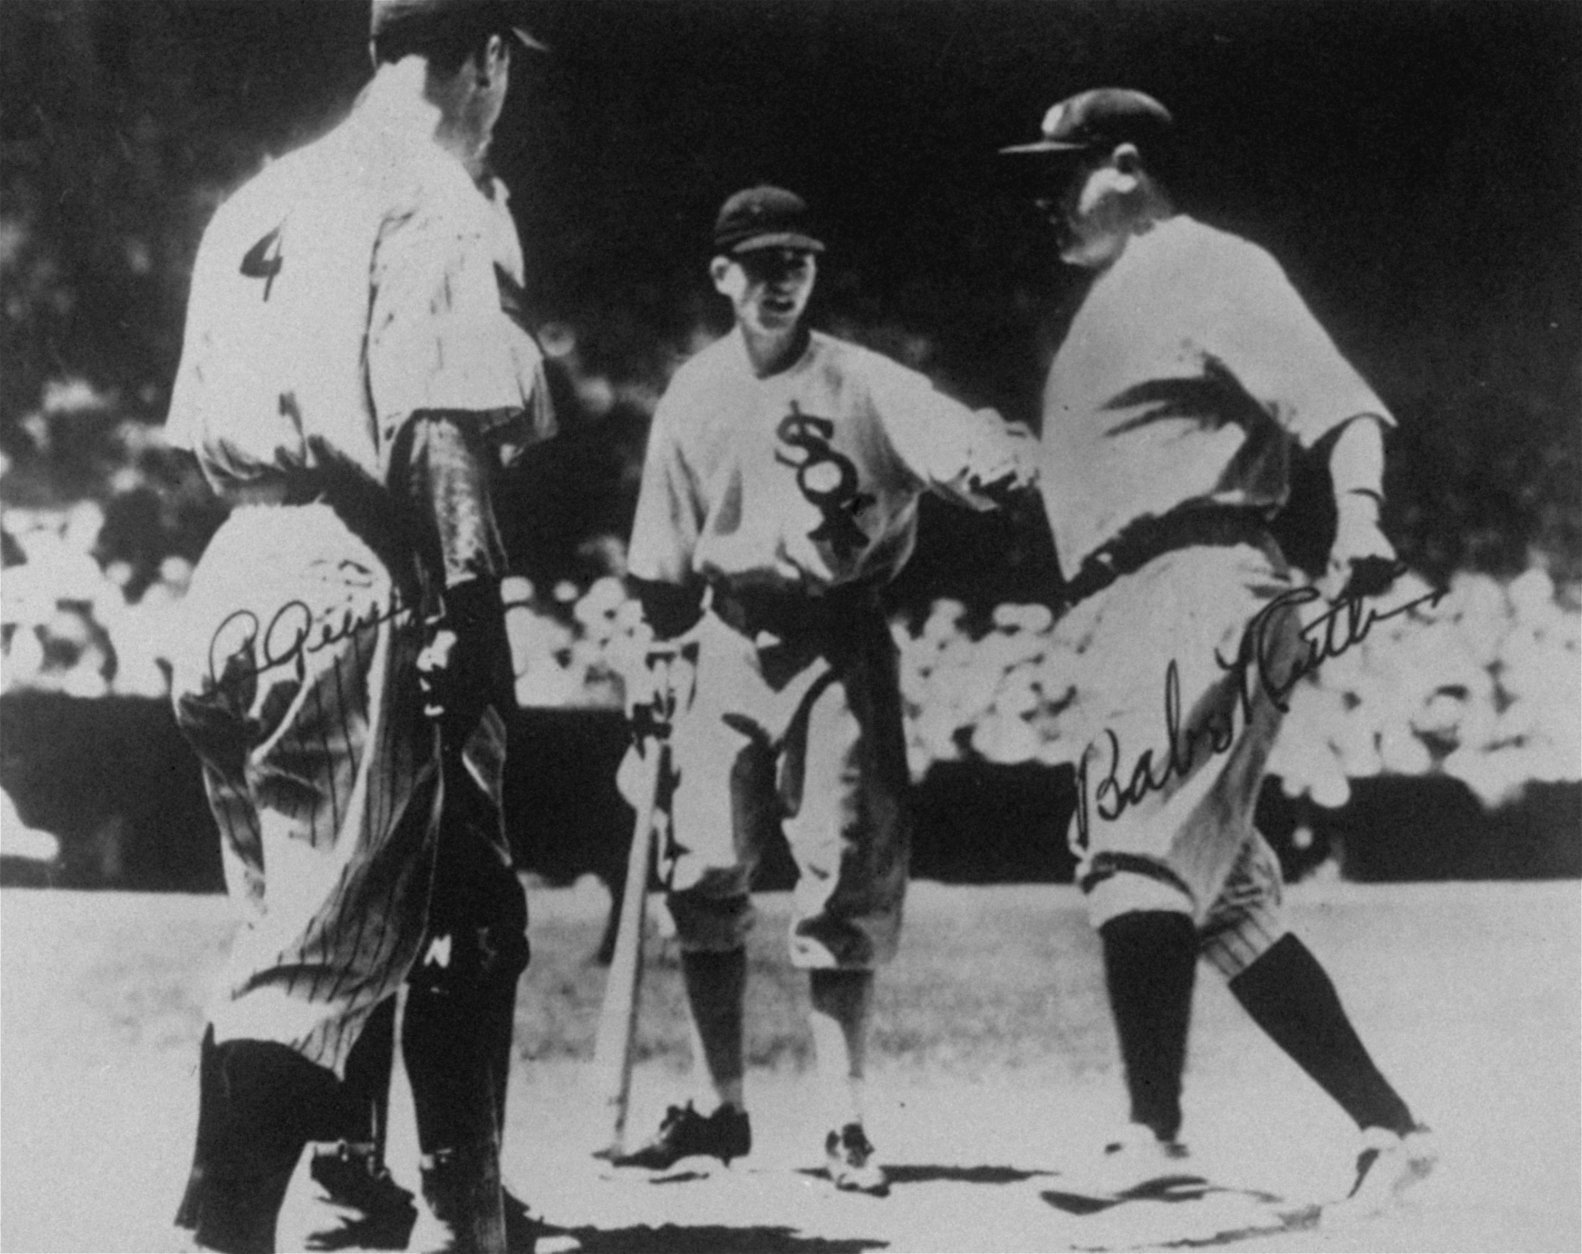 Babe Ruth crosses home plate following a two run home run off National League starting pitcher Bill Hallahan in the third inning of the first All-Star Game ever played, July 6, 1933.  Greeting Ruth at home plate are, from left:  Yankee teammate, Lou Gehrig and White Sox bat boy, John McBride.  Barely visible behind Gehrig is National League catcher Jimmie Wilson.  The American League won 4-2. (AP Photo)